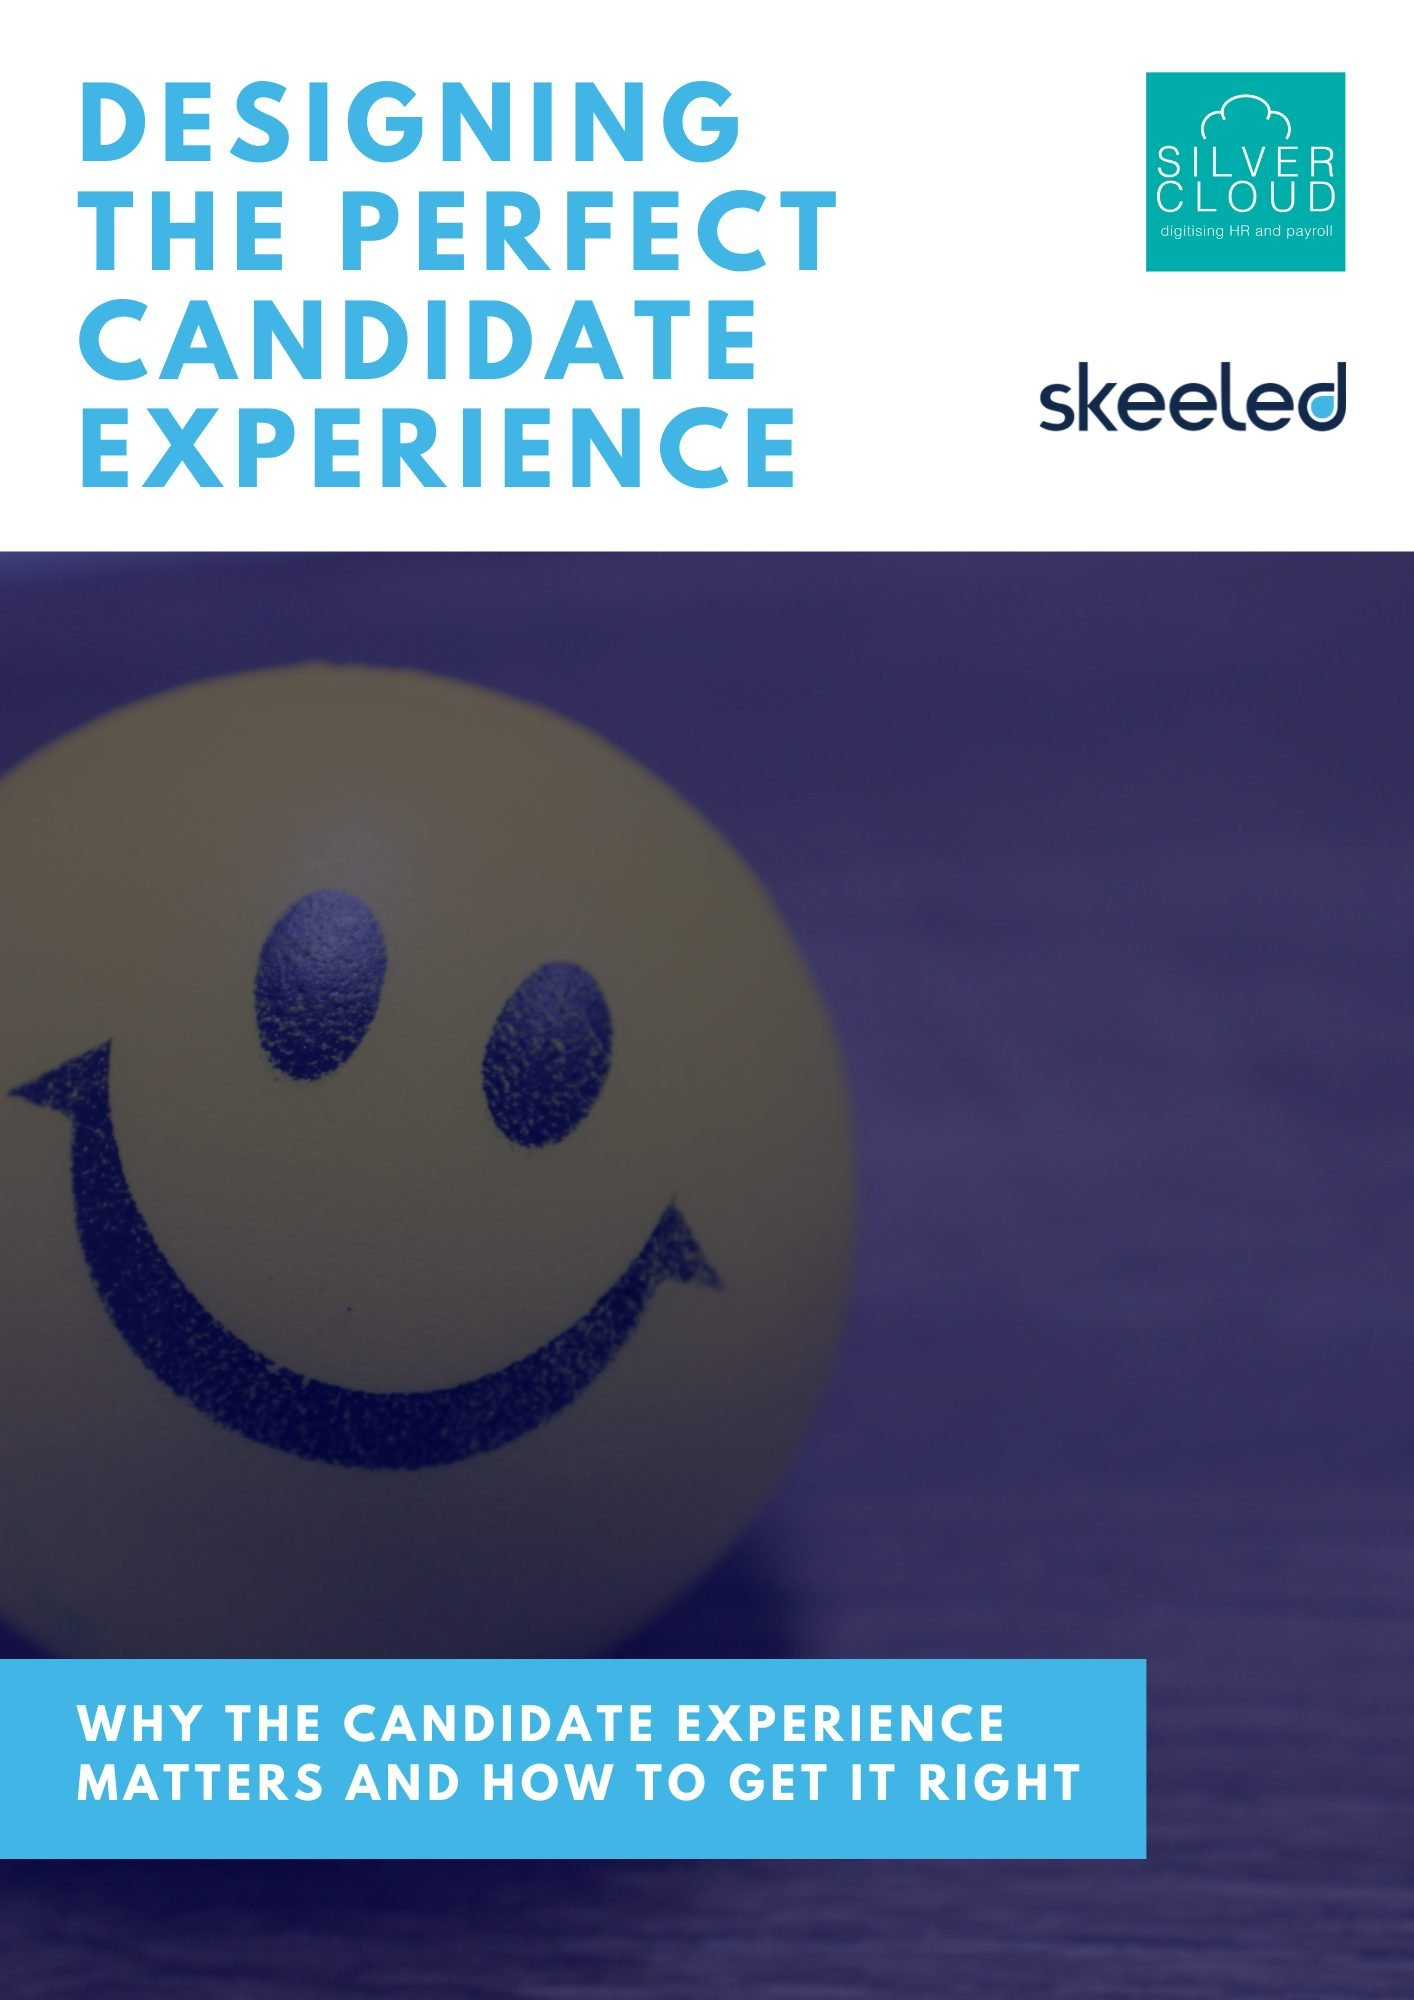 joint-whitepaper-skeeled-silver-cloud-candidate-experience